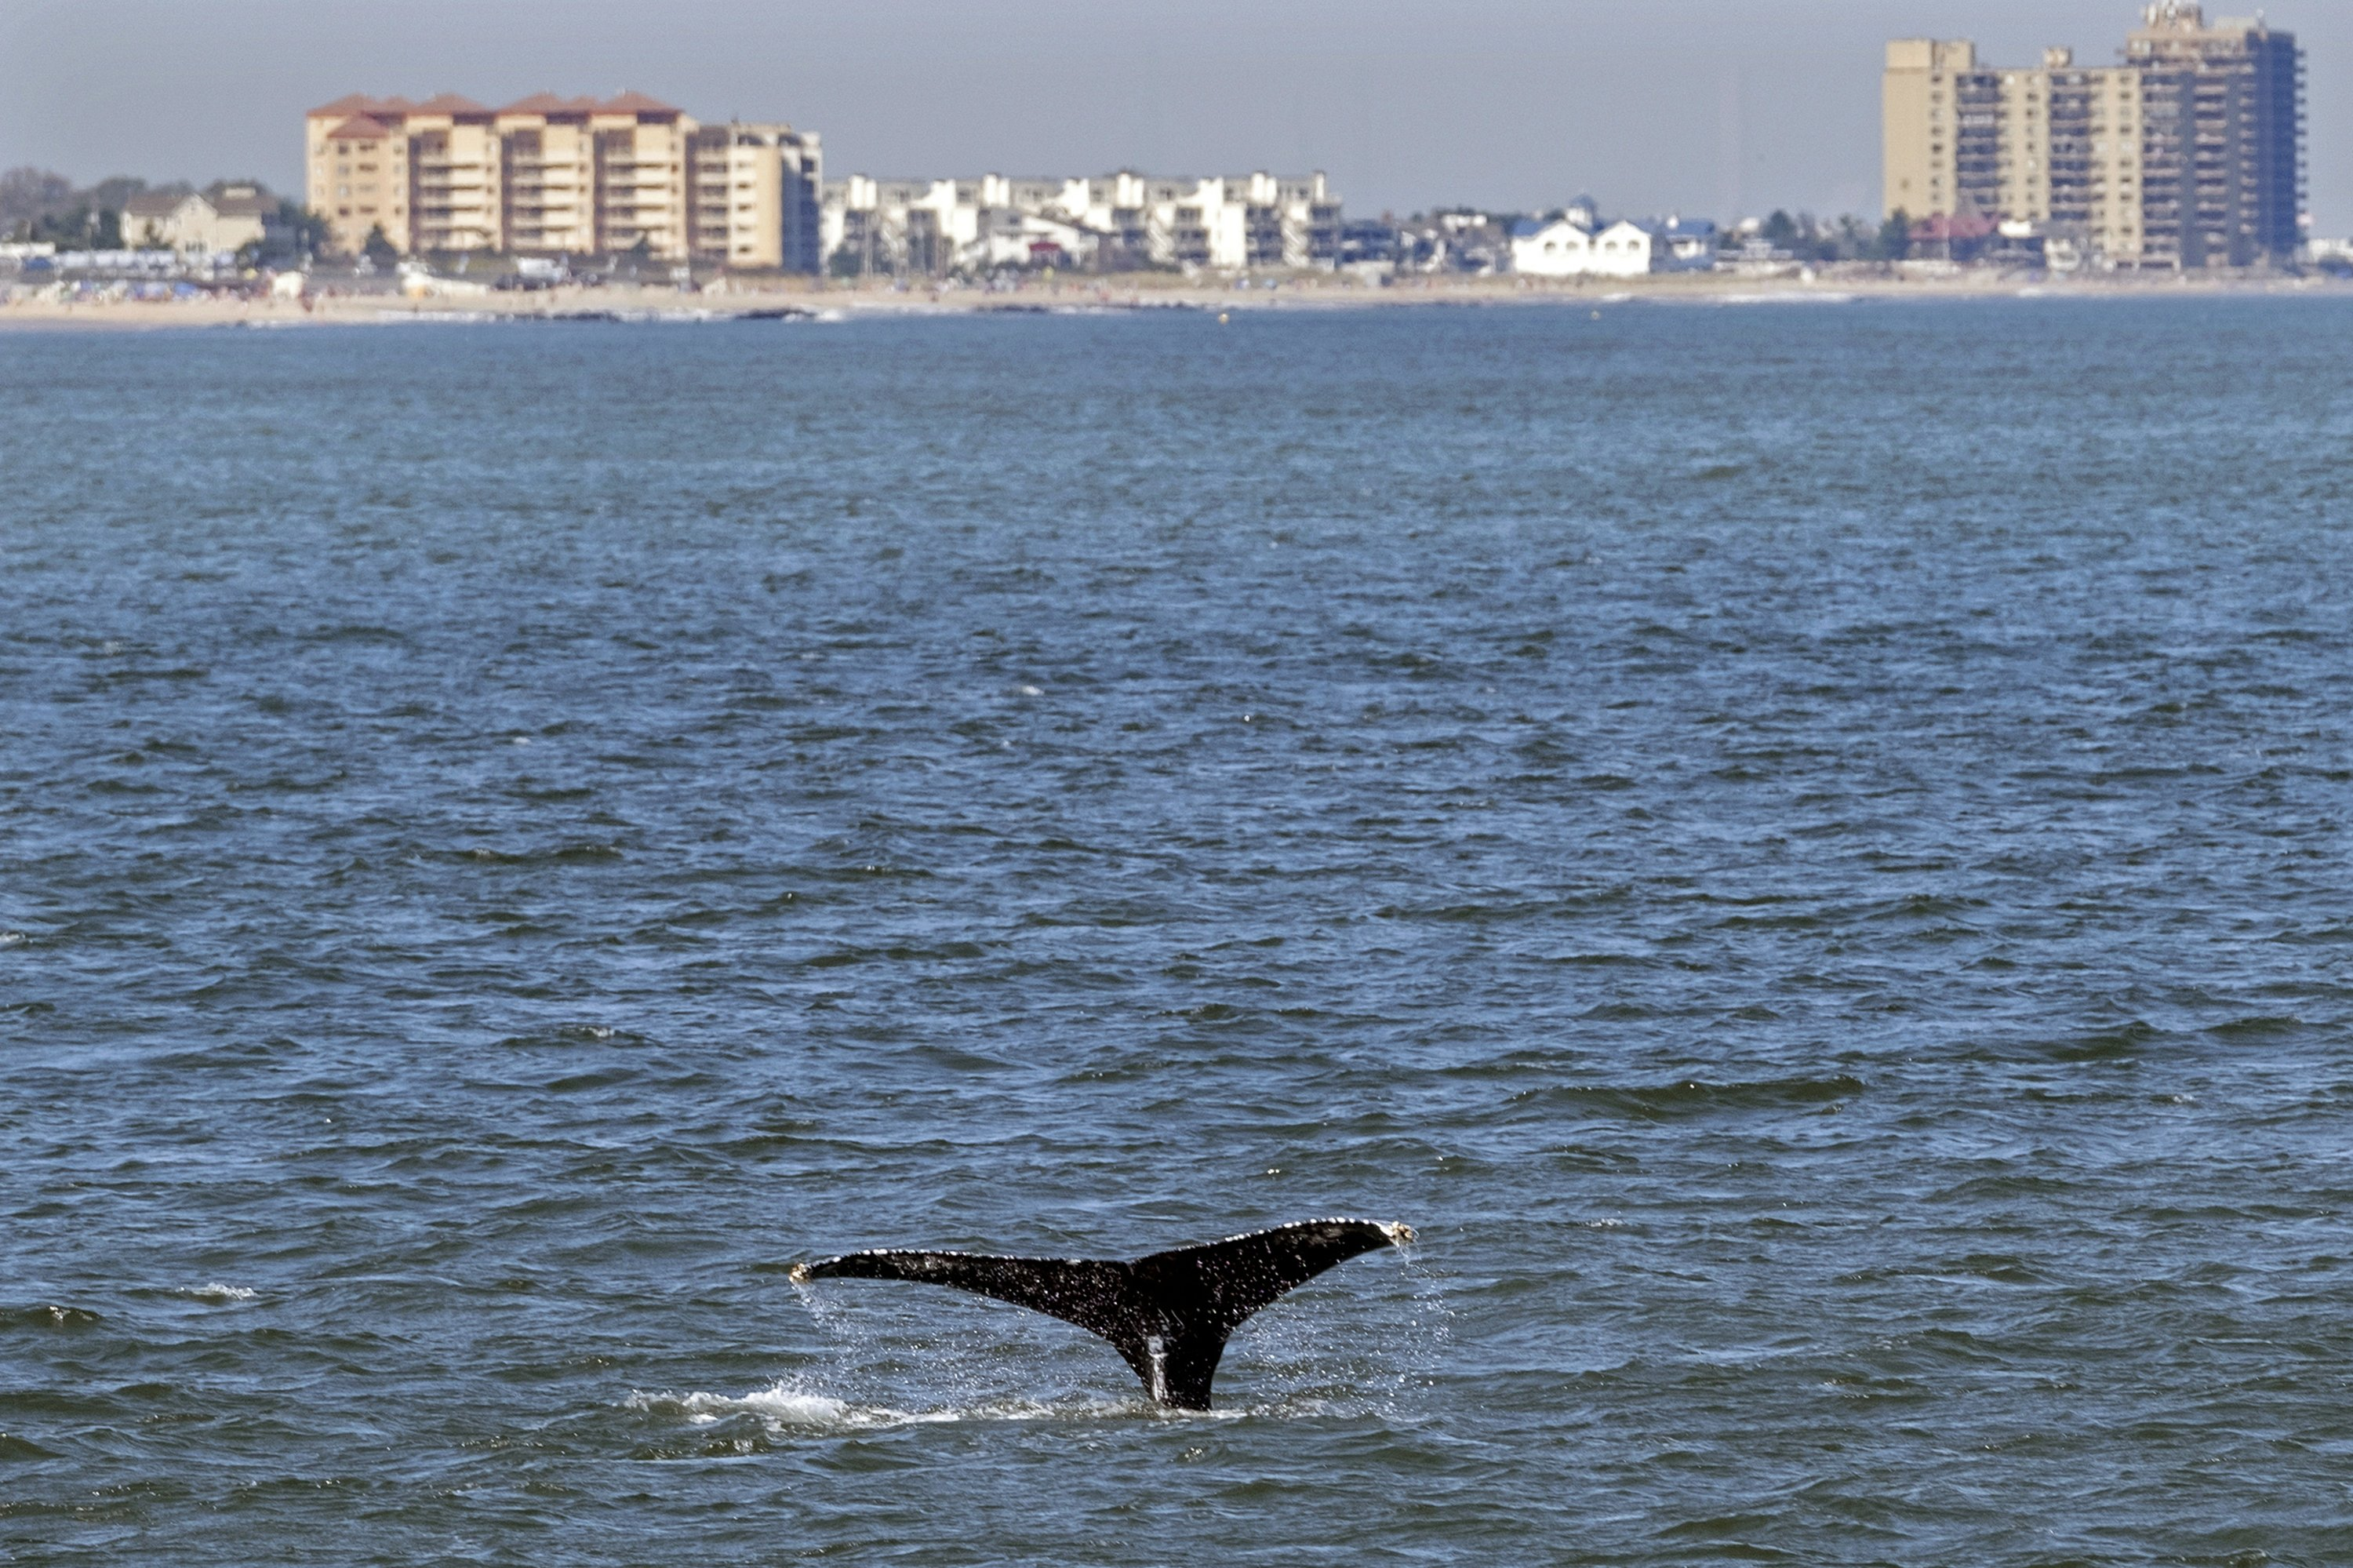 young-whales-looking-to-dine-flock-to-waters-off-nyc